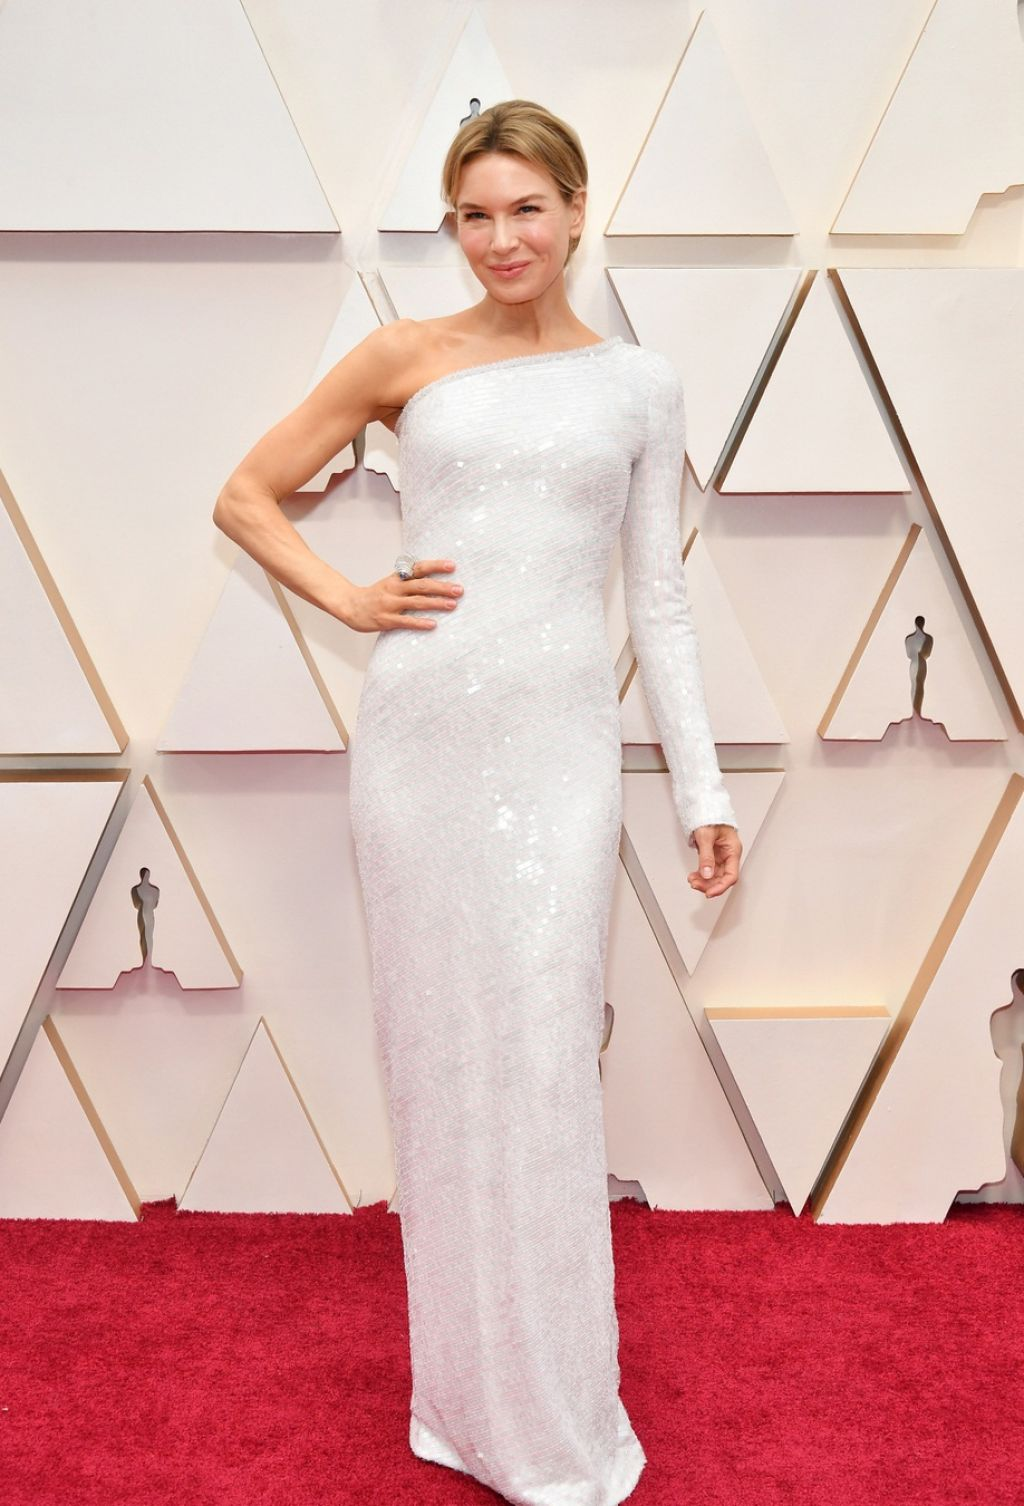 Renee Zellweger sparkles in white hot body hugging one shouldered Oscars red carpet